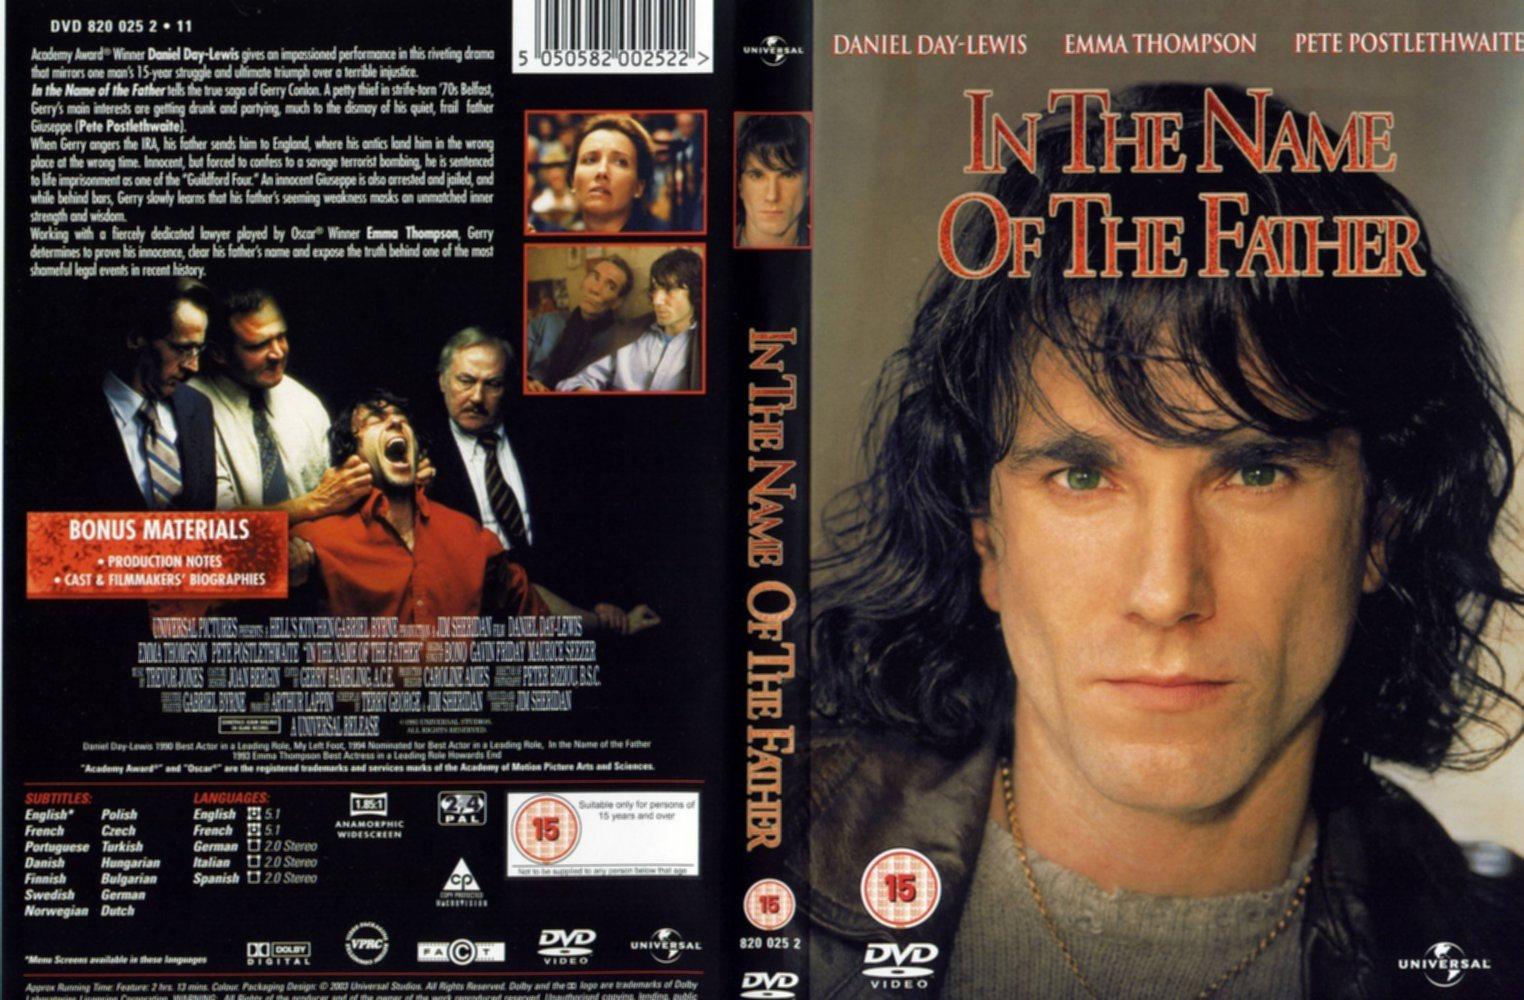 a movie review on in the name of the father In the name of the father is a visual text directed by jim sheridan and was released in 1993 i will be discussing how film techniques such as visual and verbal feature are used in a particular scene from the movie and how it engages the audience's emotions.